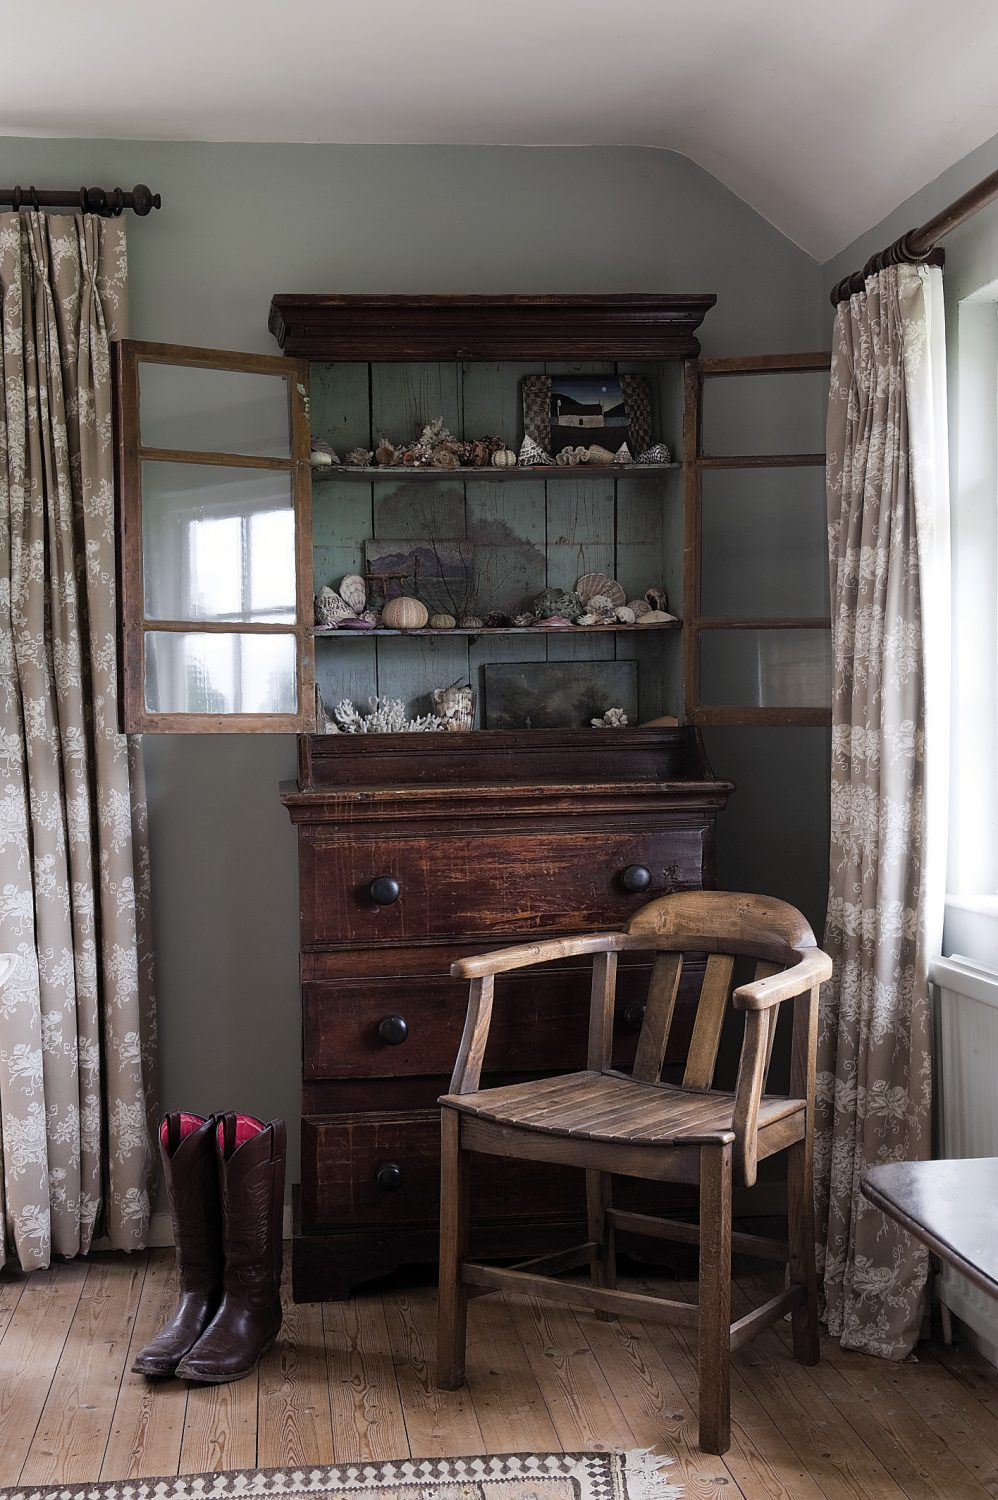 Warmth is provided by natural stripped floorboards and a beautiful little Welsh glass-fronted dresser, home to Veronica's collection of seashells.